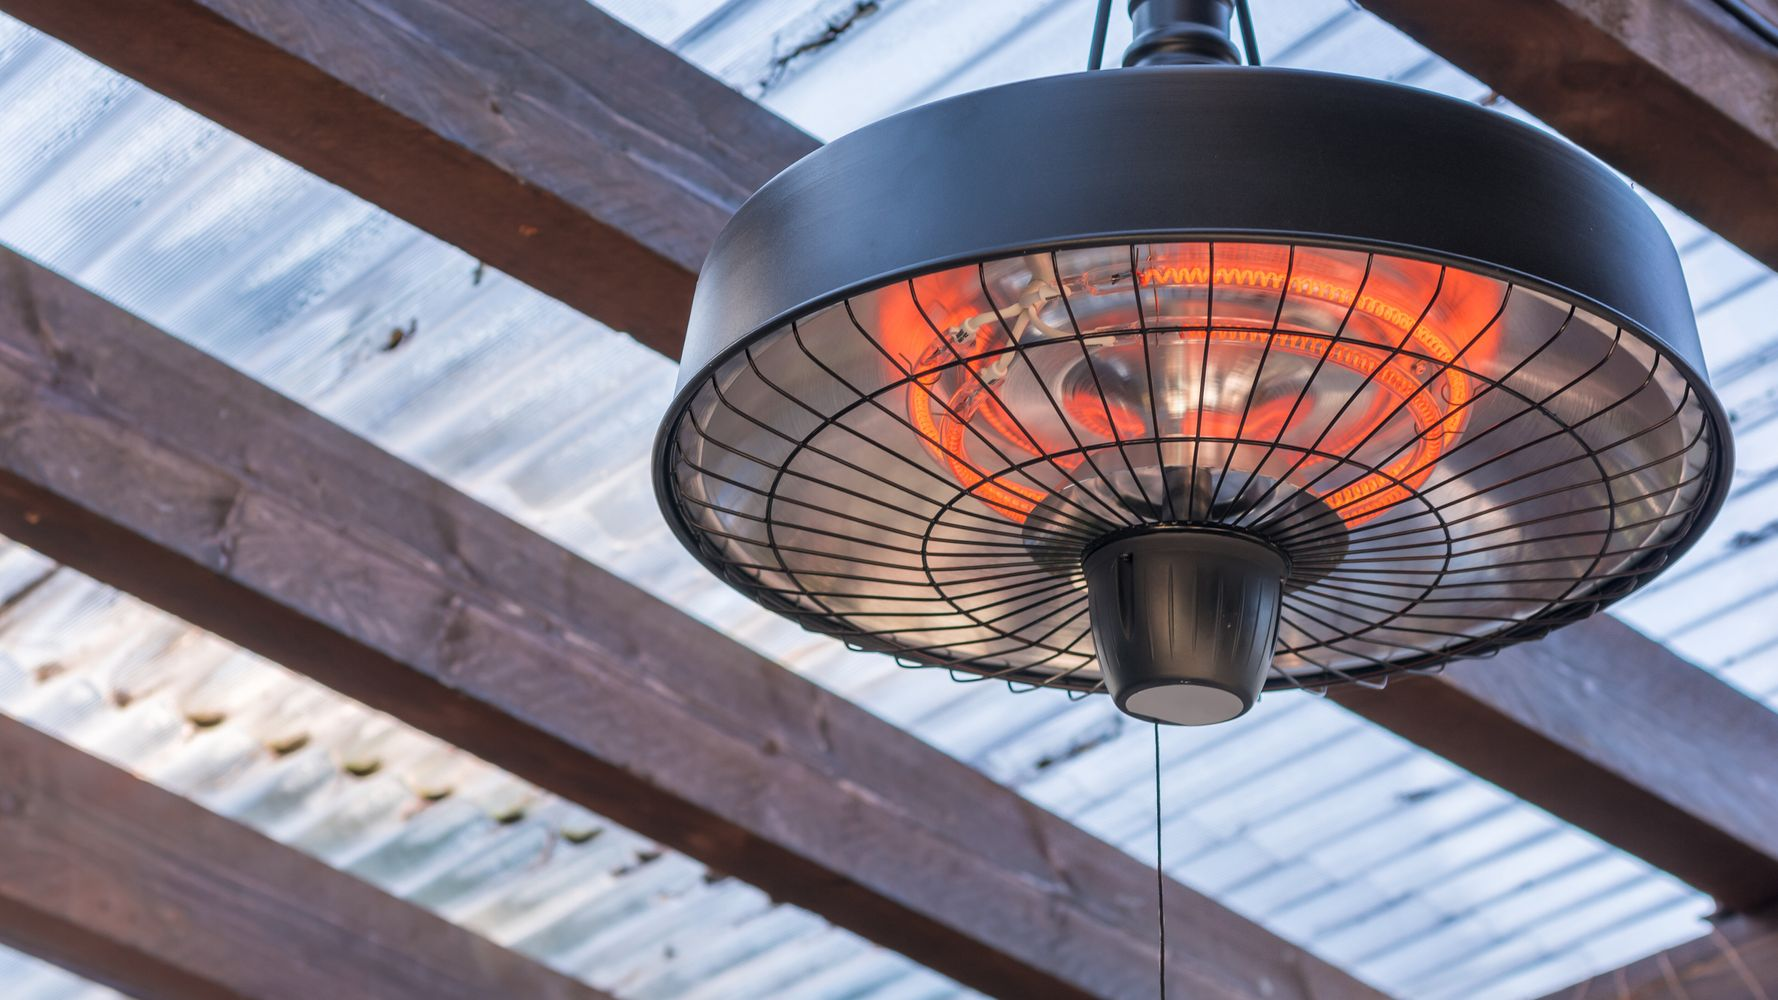 The Best Outdoor Heaters To Warm Up Your Patio, Deck Or Yard